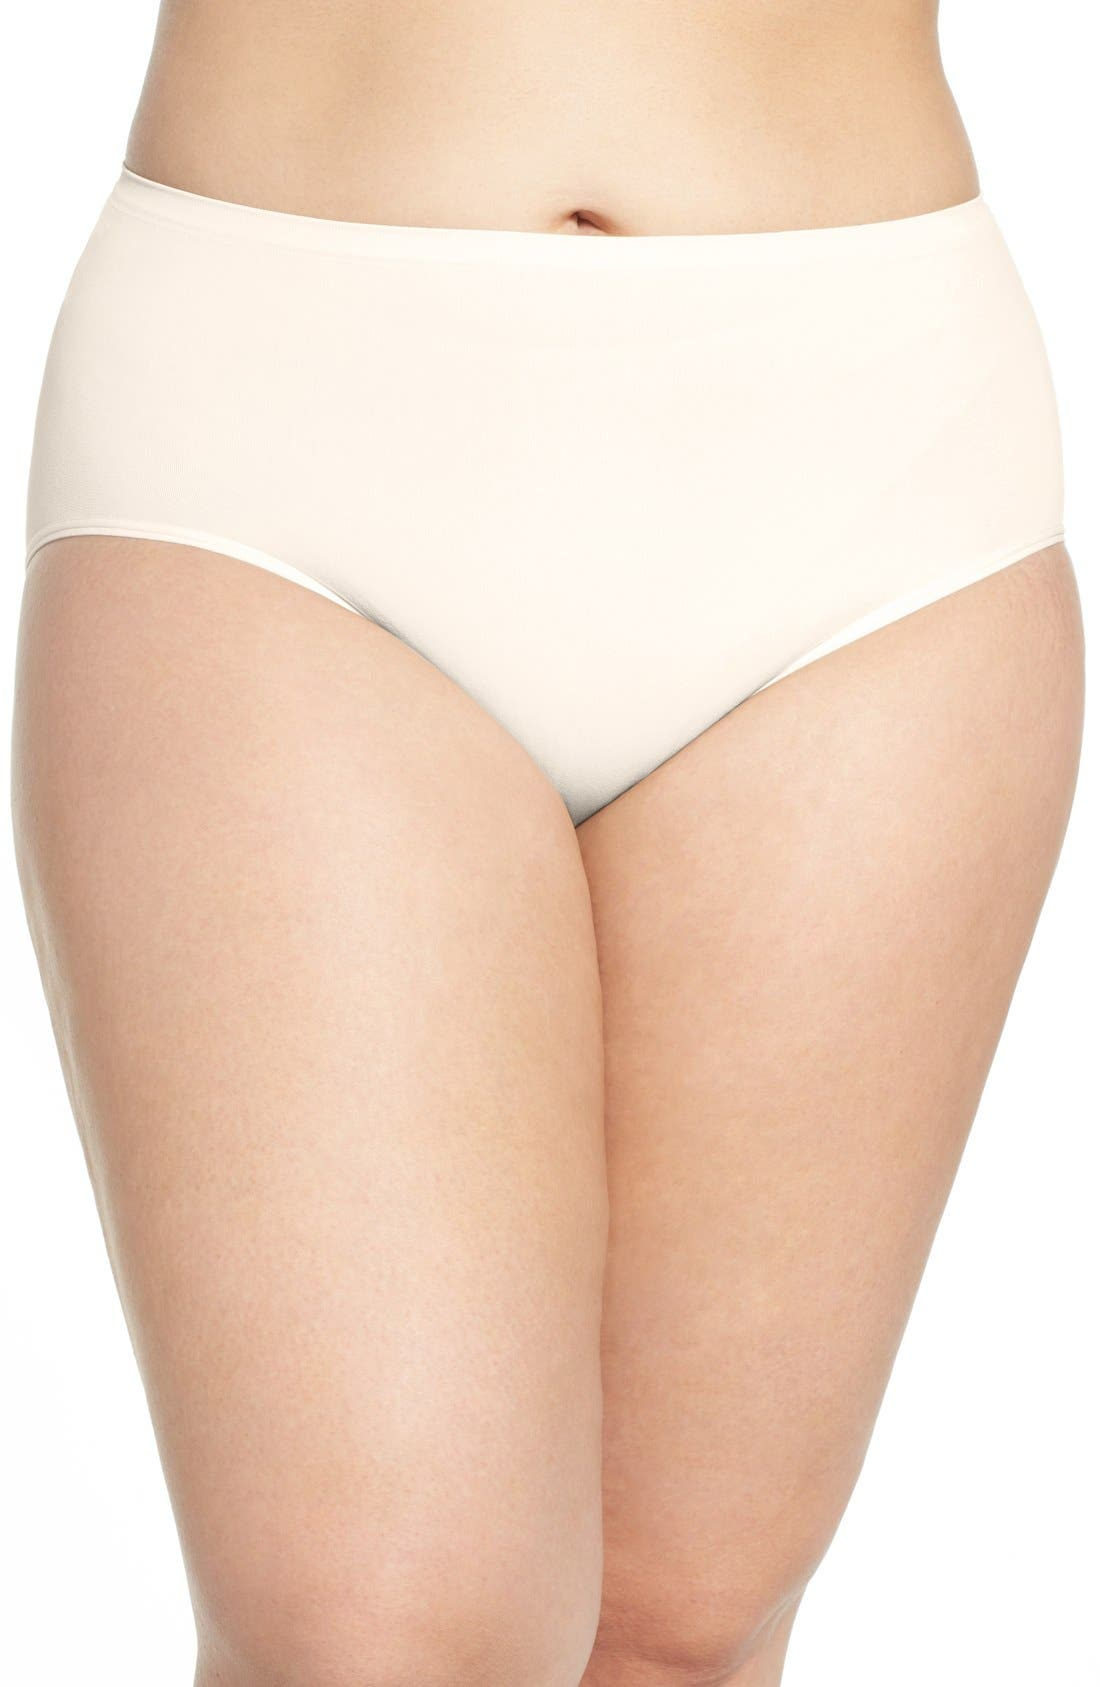 Nordstrom Lingerie Seamless Briefs (Plus Size)